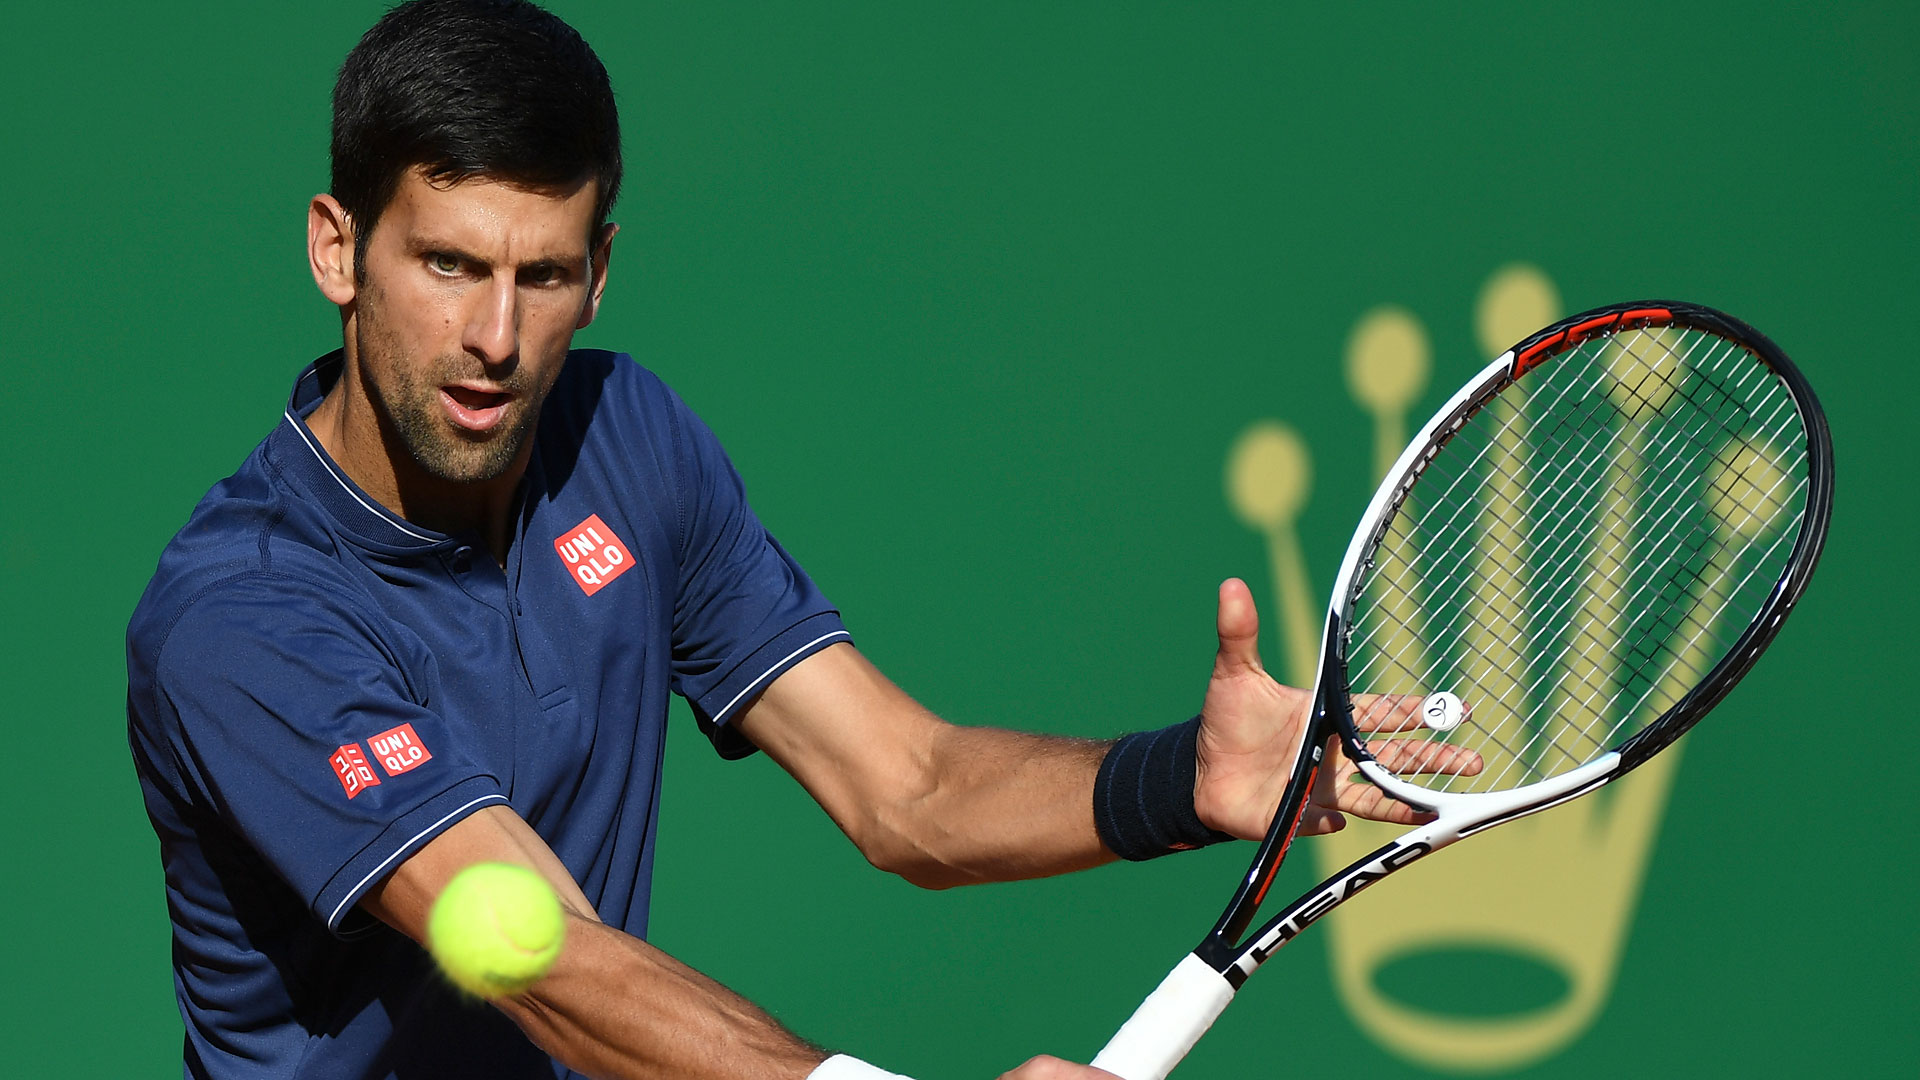 djokovic-monte-carlo-2017-thursday2